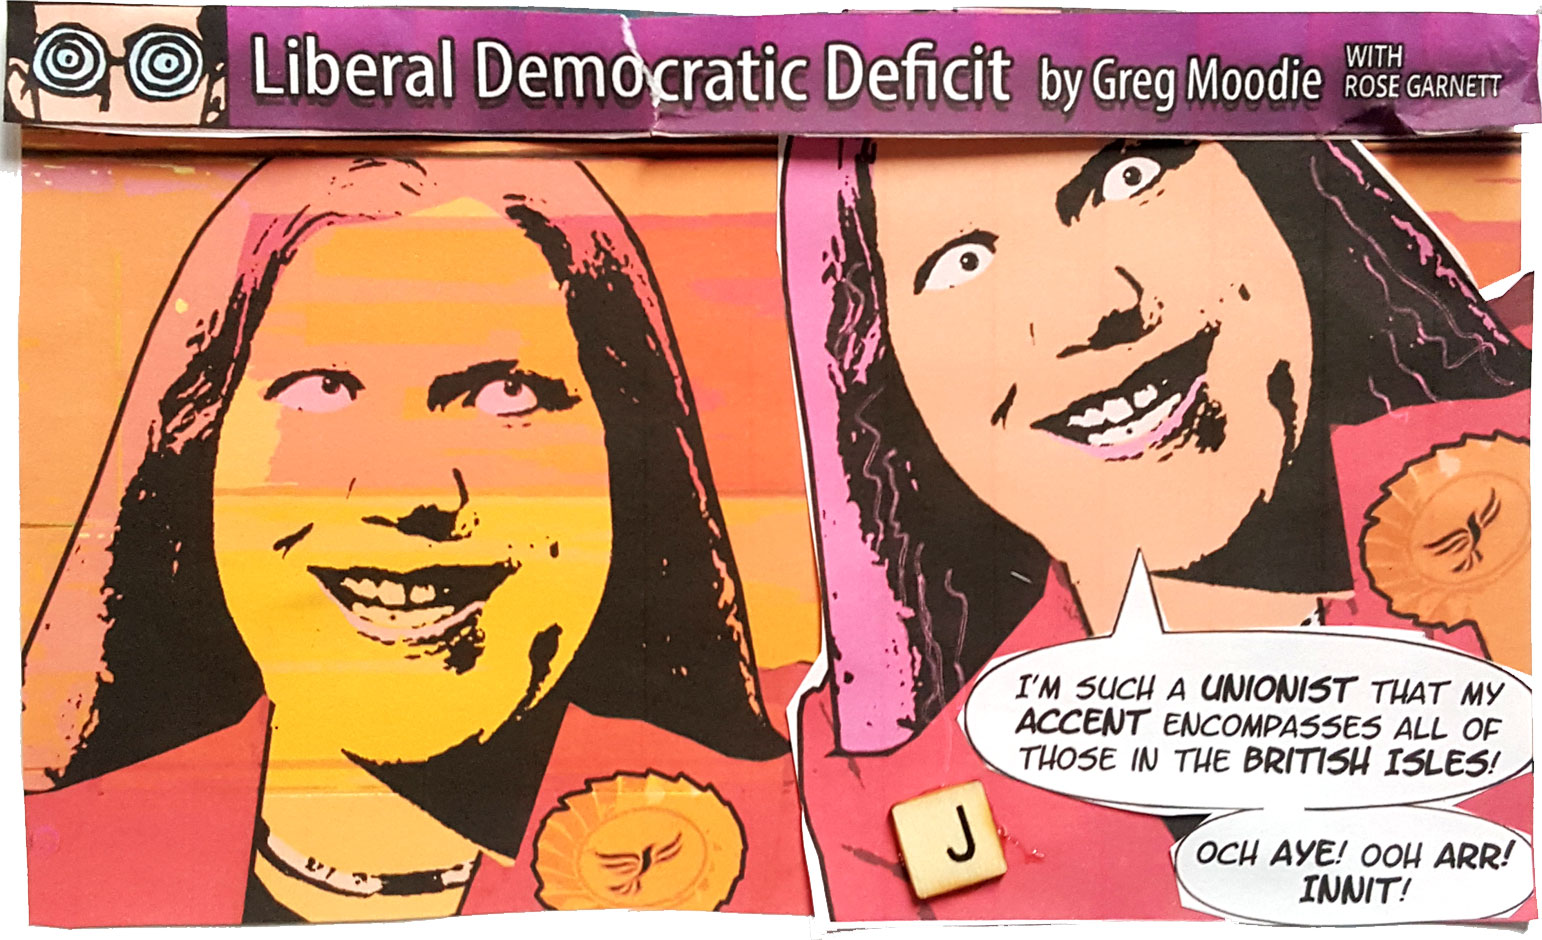 Liberal Democratic Deficit